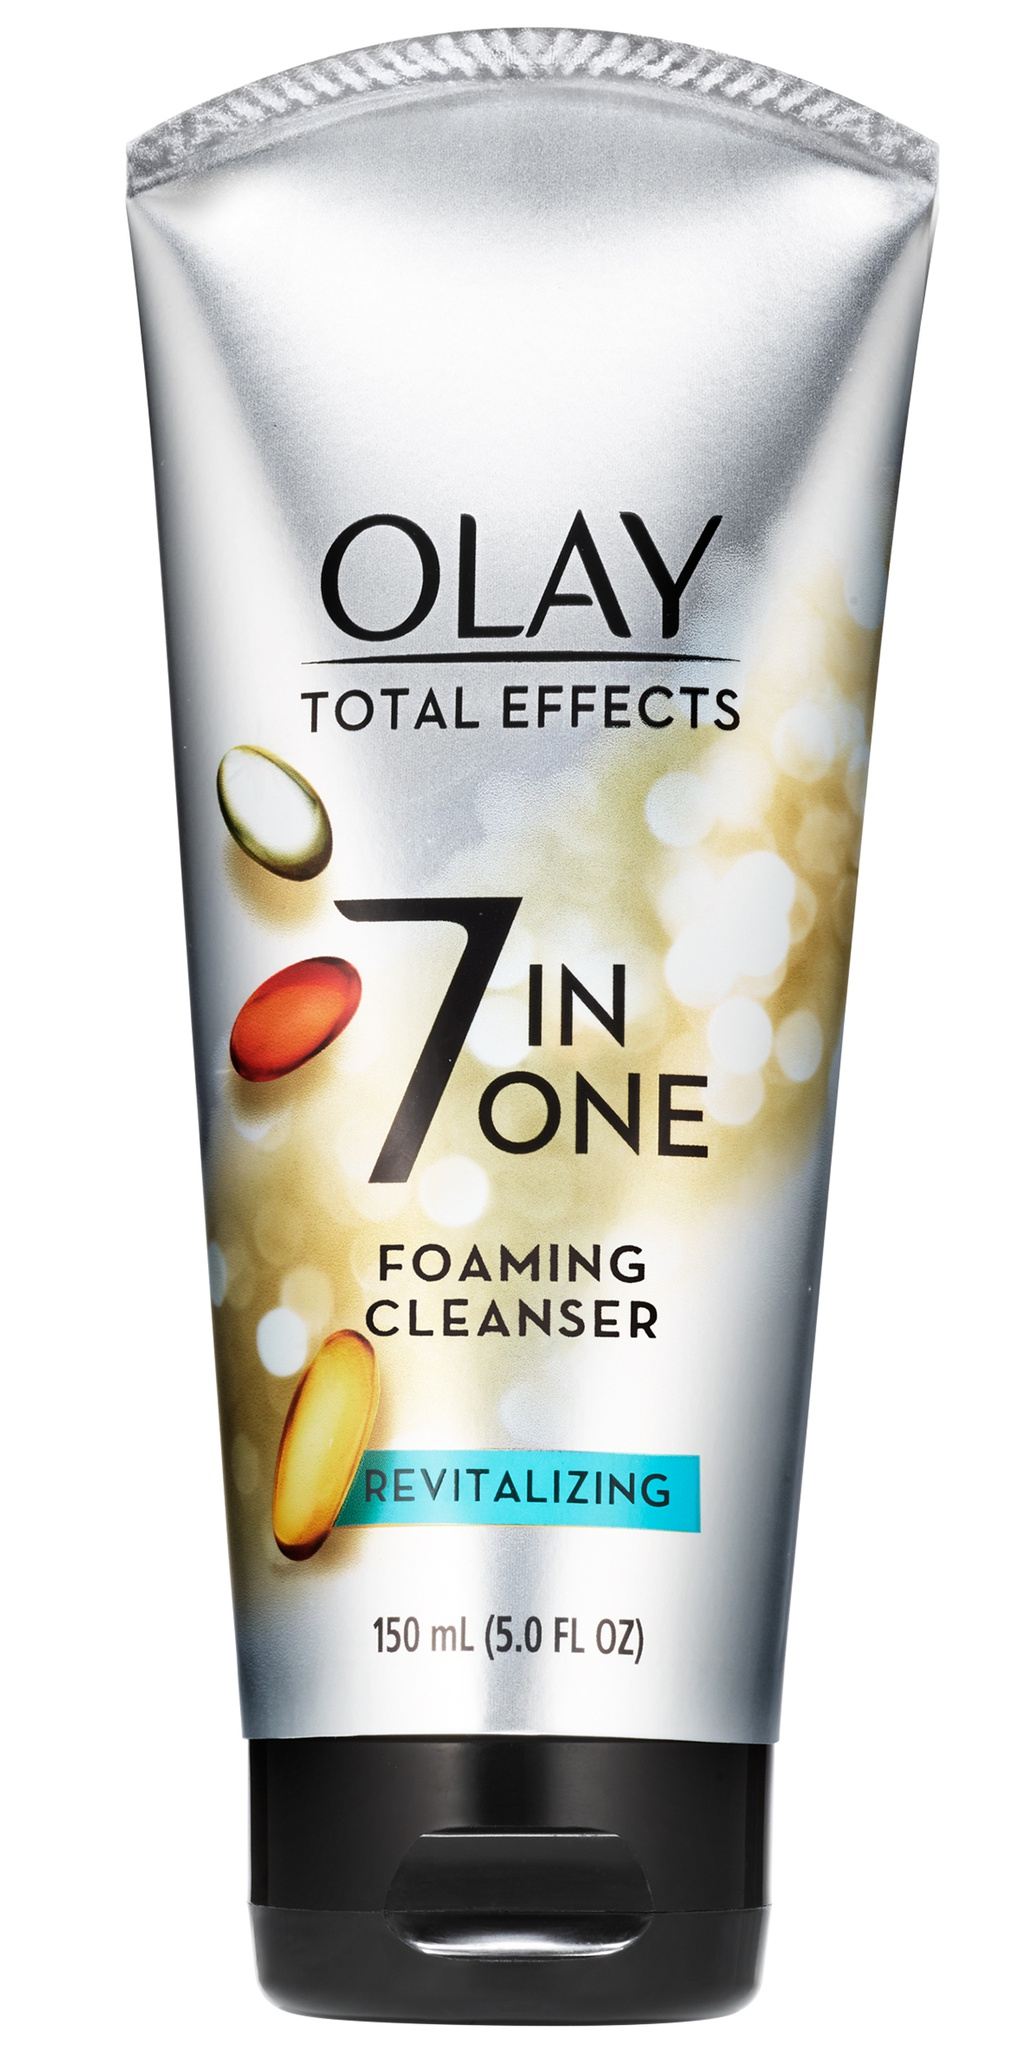 Olay Total Effects Face Cleanser